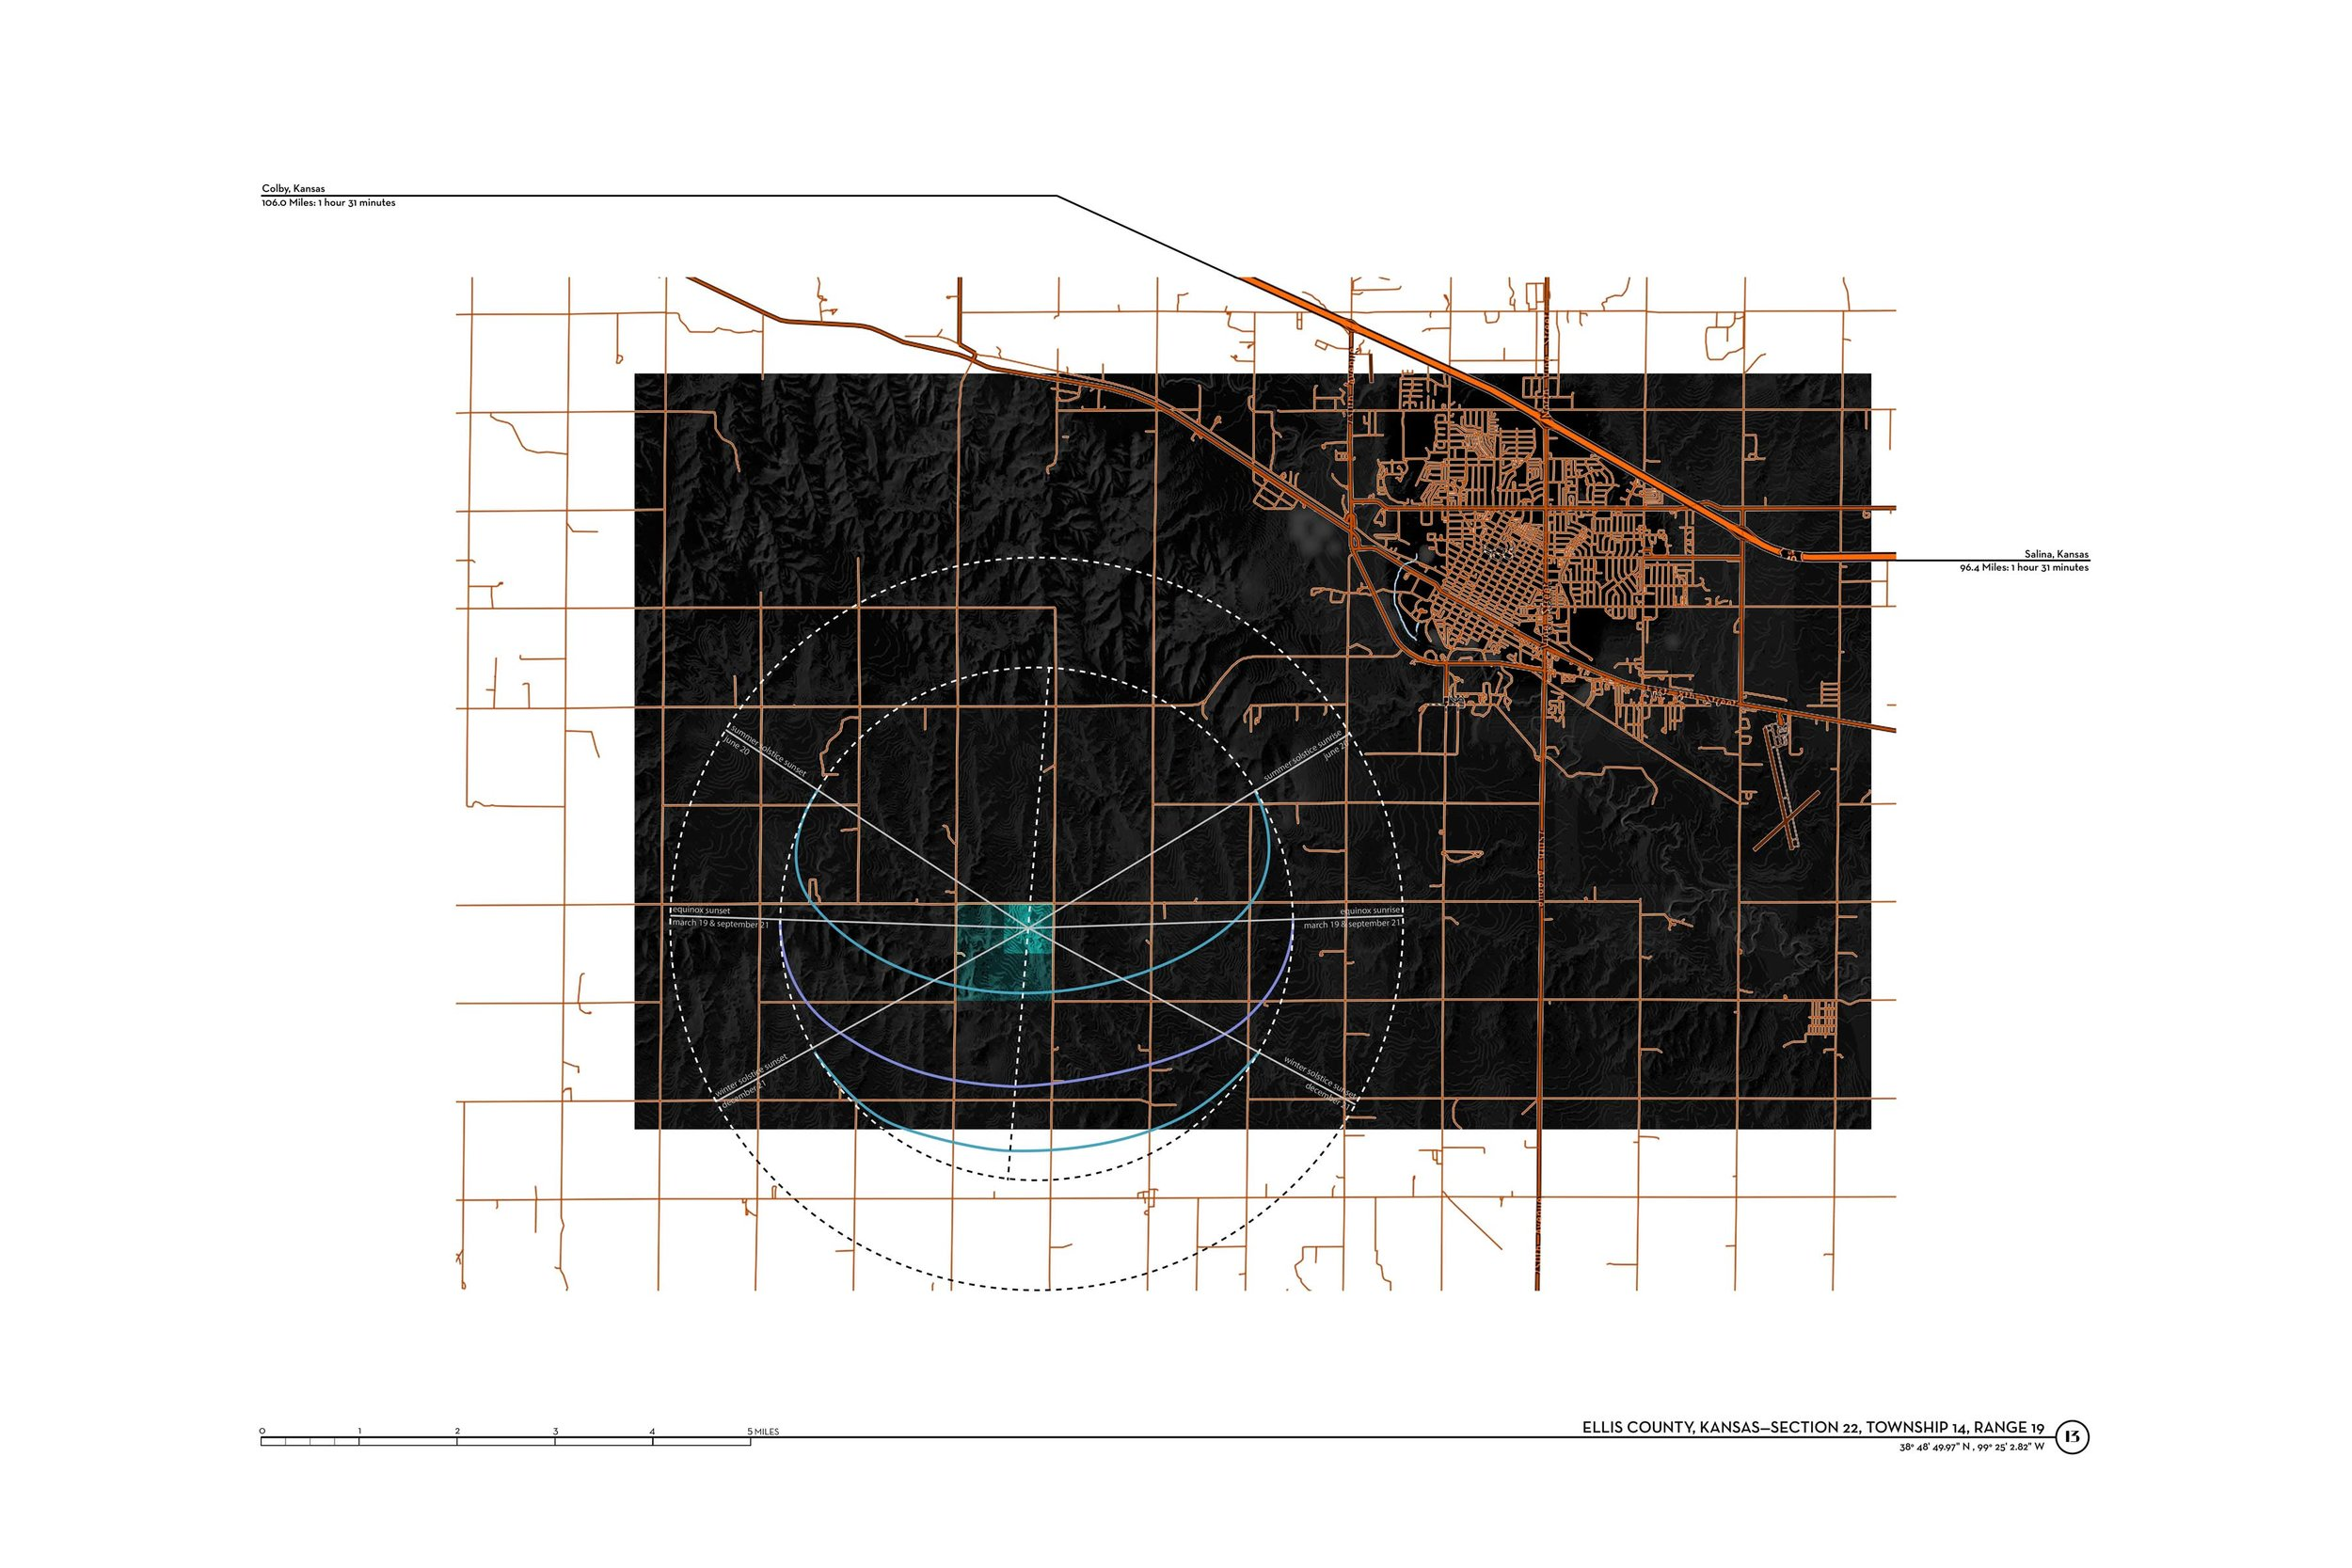 mapping-13 Small.jpg